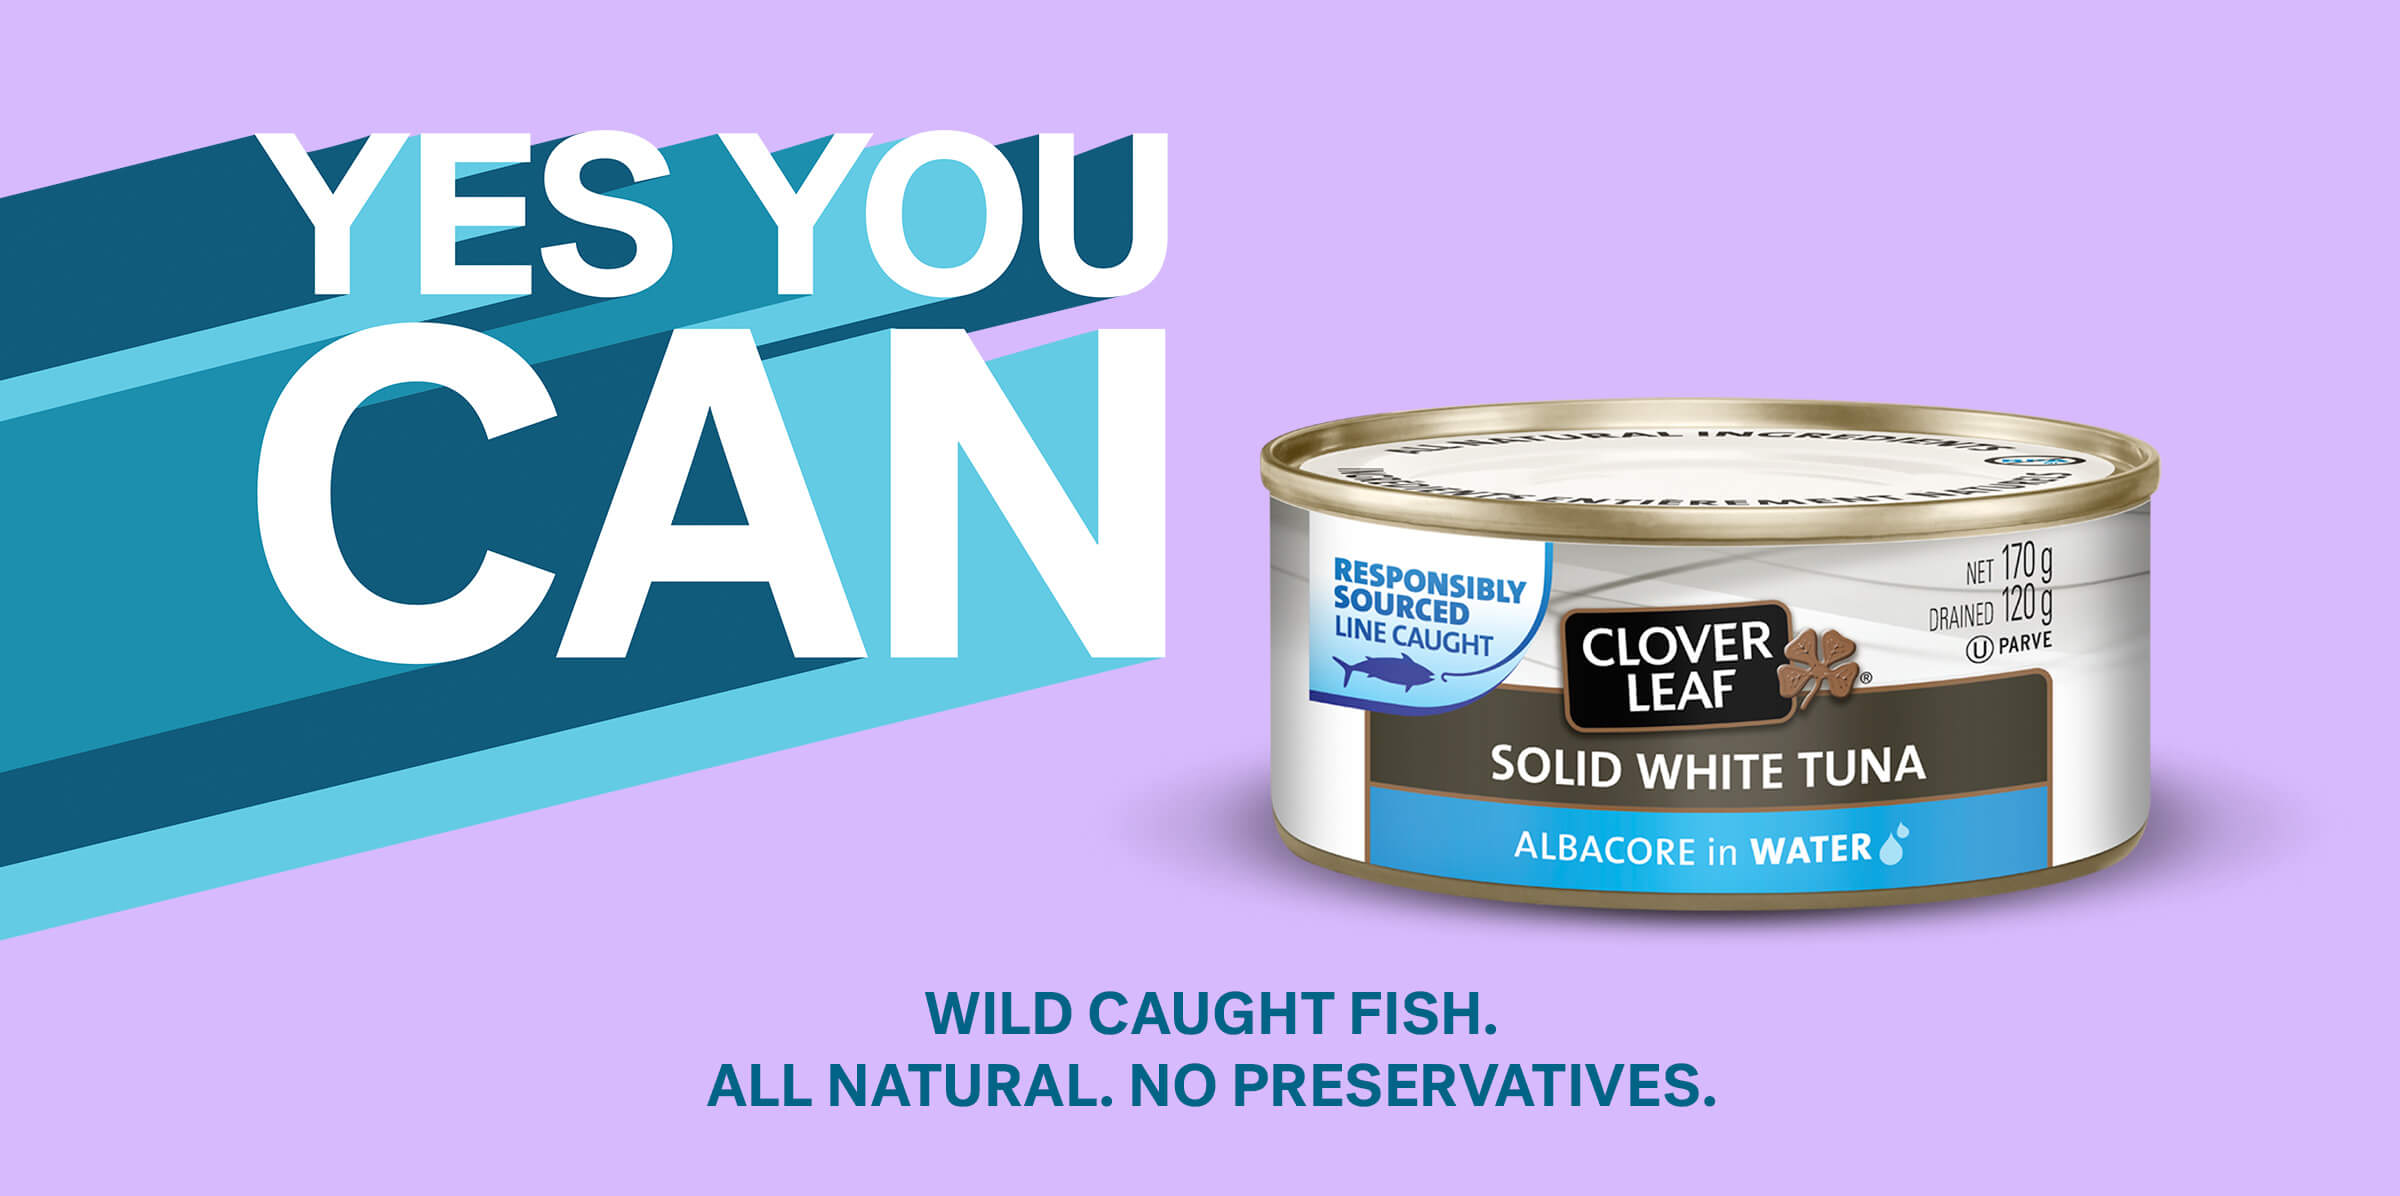 Yes You Can.  Wild caught fish. All natural. no preservatives.